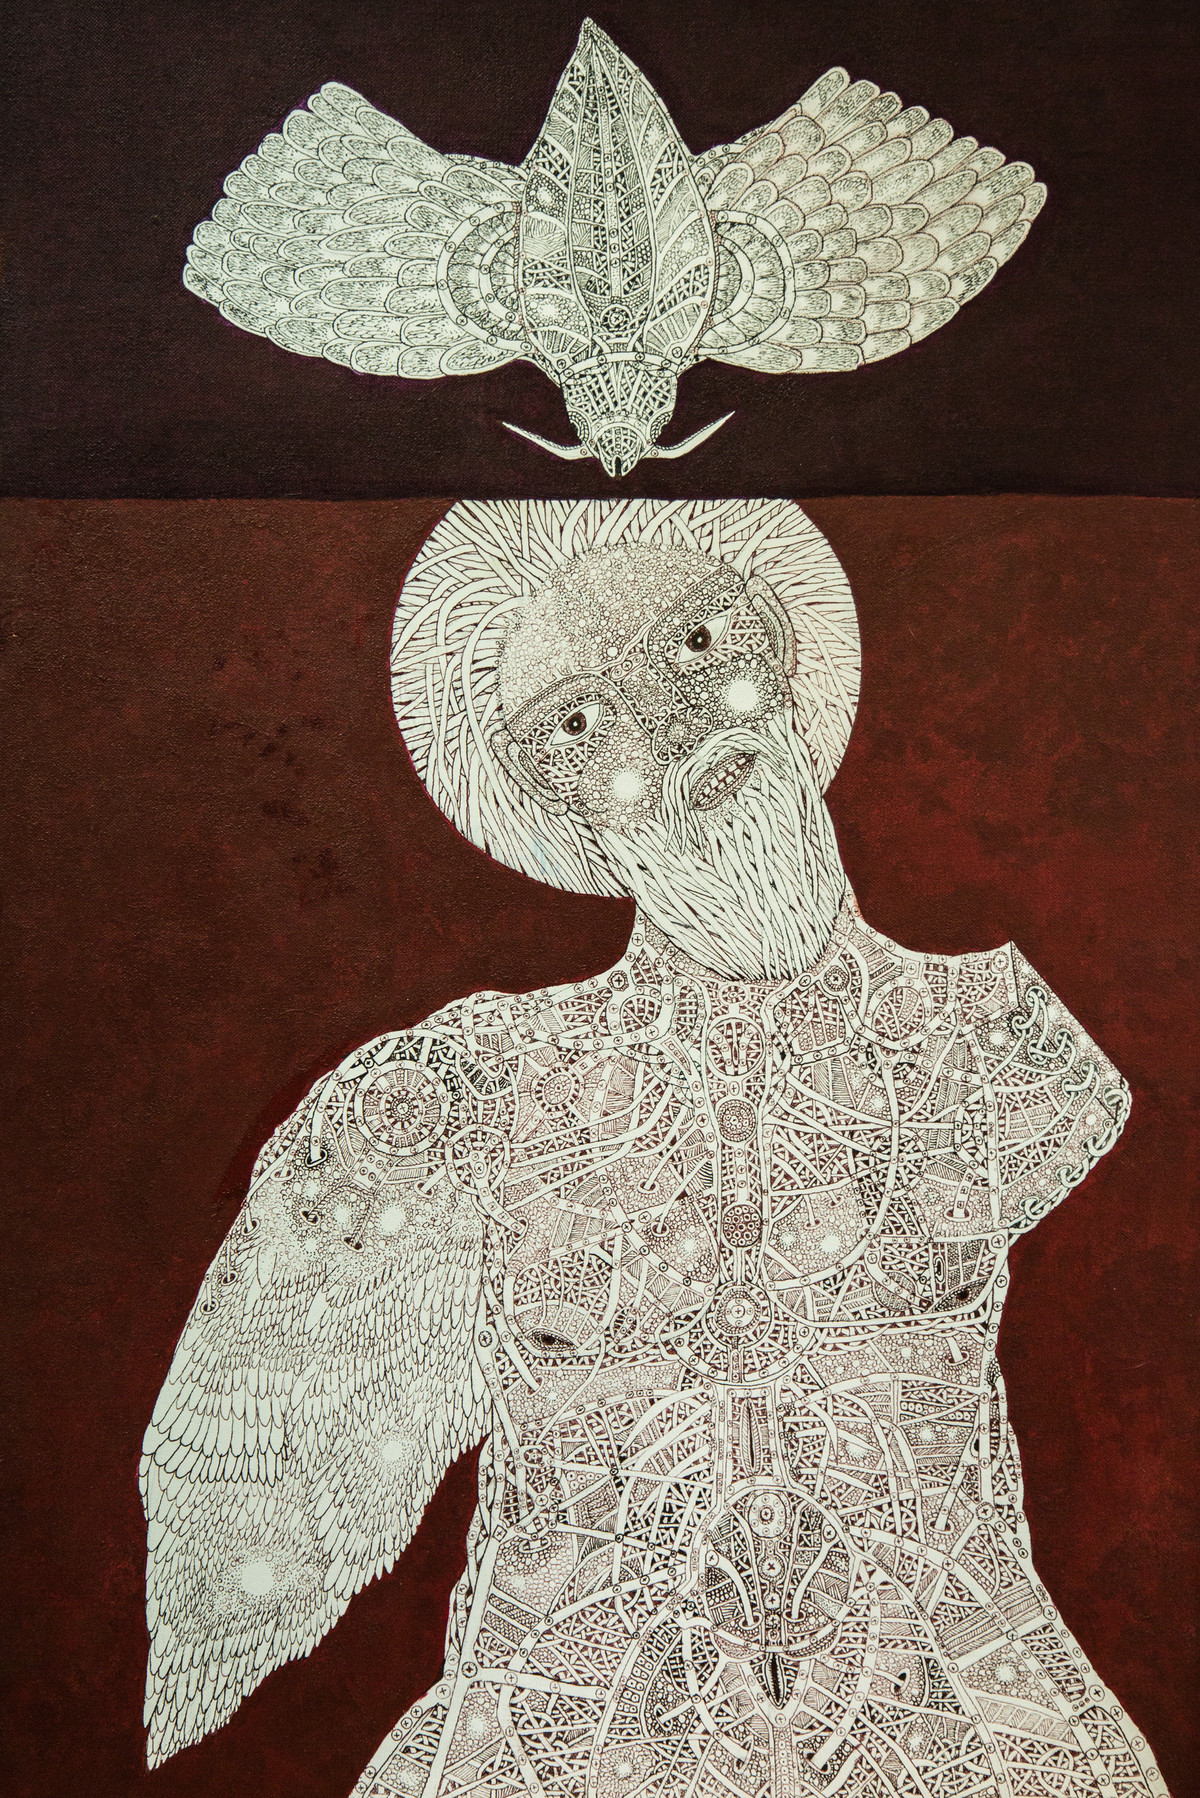 Unspoken Myths 2 by Mangesh Narayanrao Kale, Illustration Painting, Acrylic & Ink on Canvas, Brown color